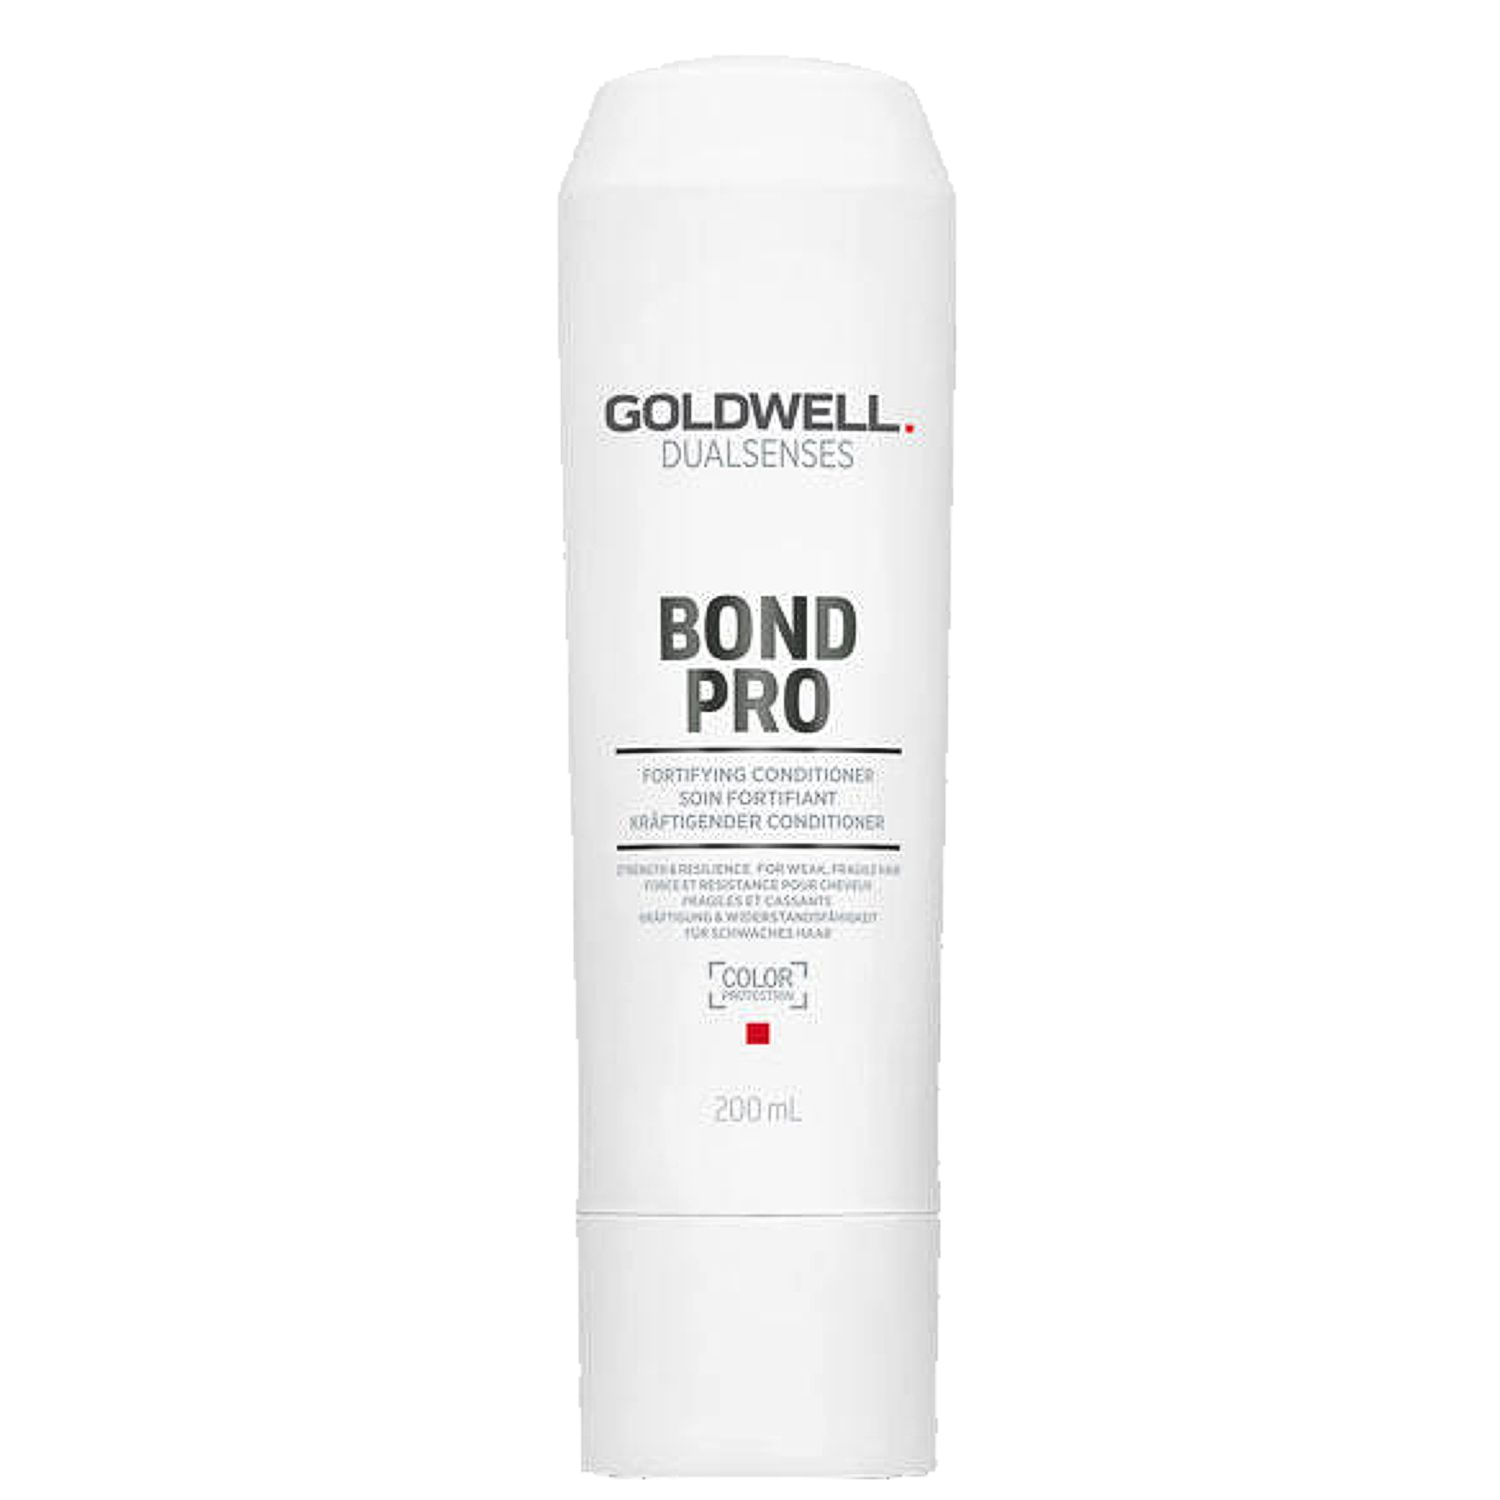 GOLDWELL Dualsenses BOND PRO Fortifying Conditioner 200 ml